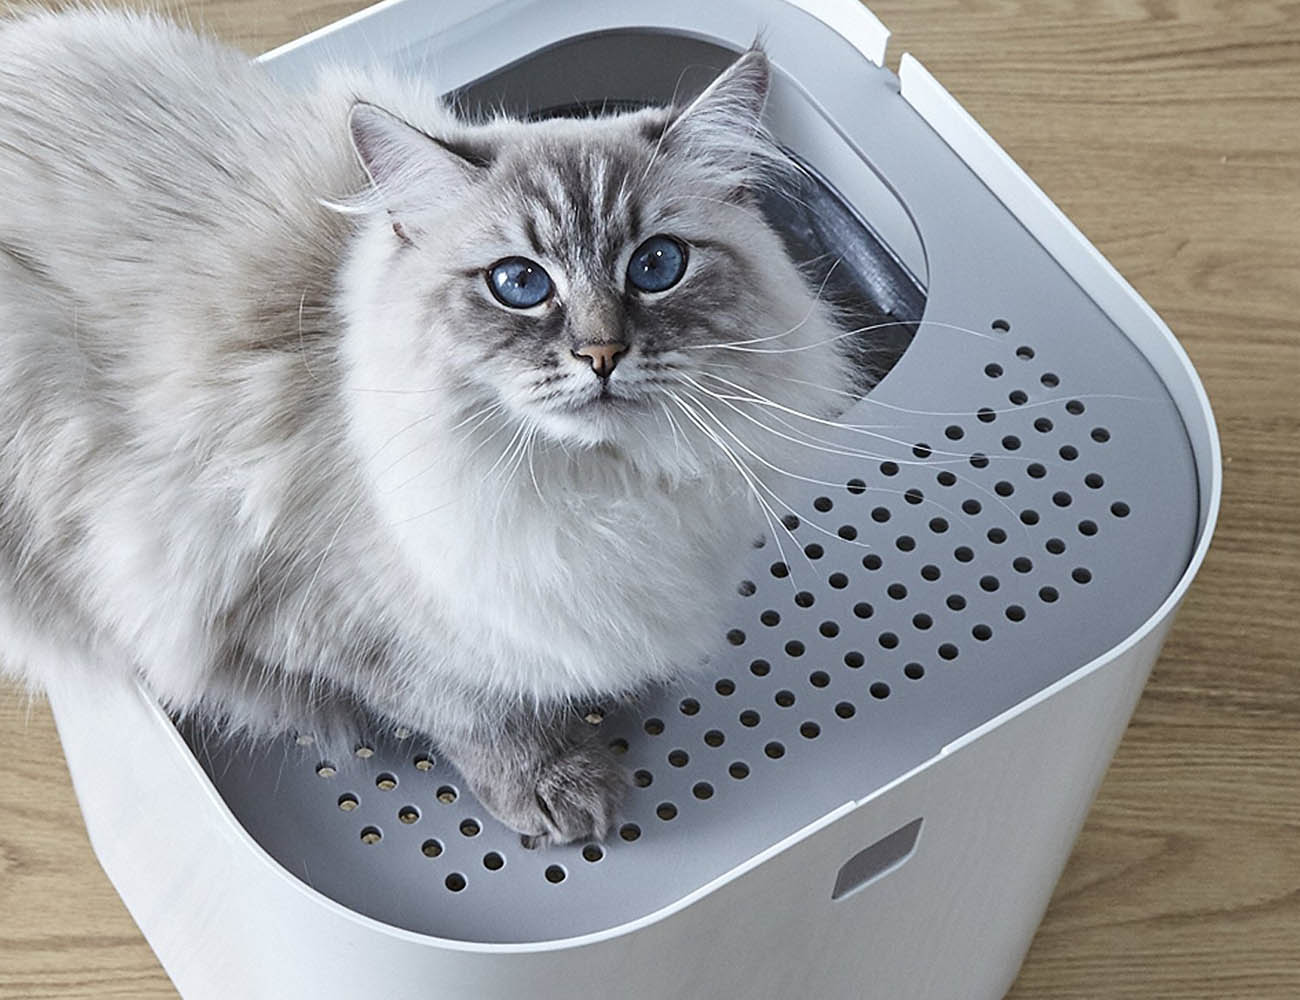 ModKat Litter Box – For Your Feline Friend